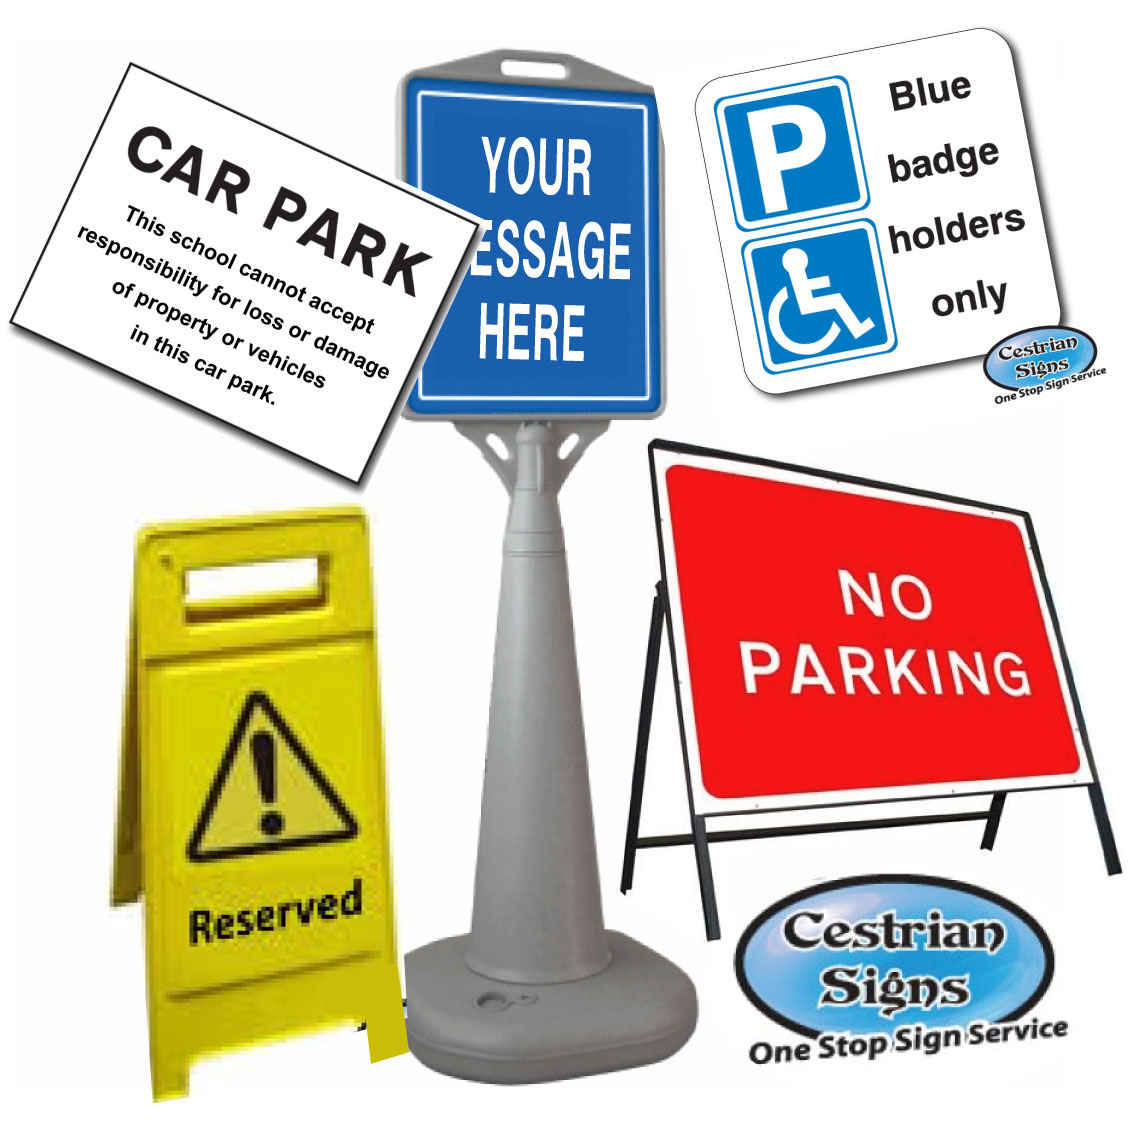 Car Park Management Signs